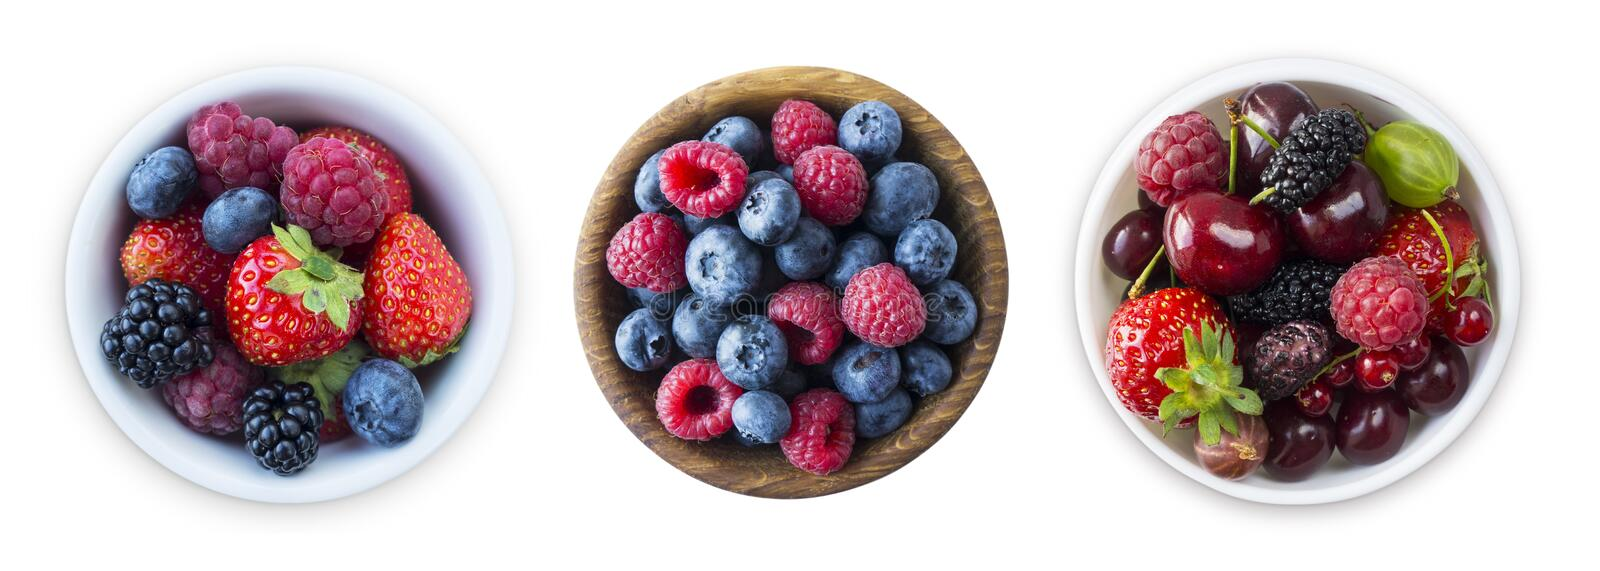 Top view. Fruits and berries in bowl isolated on white background. Ripe raspberries, blueberries, cherries, strawberries, blackber royalty free stock photos